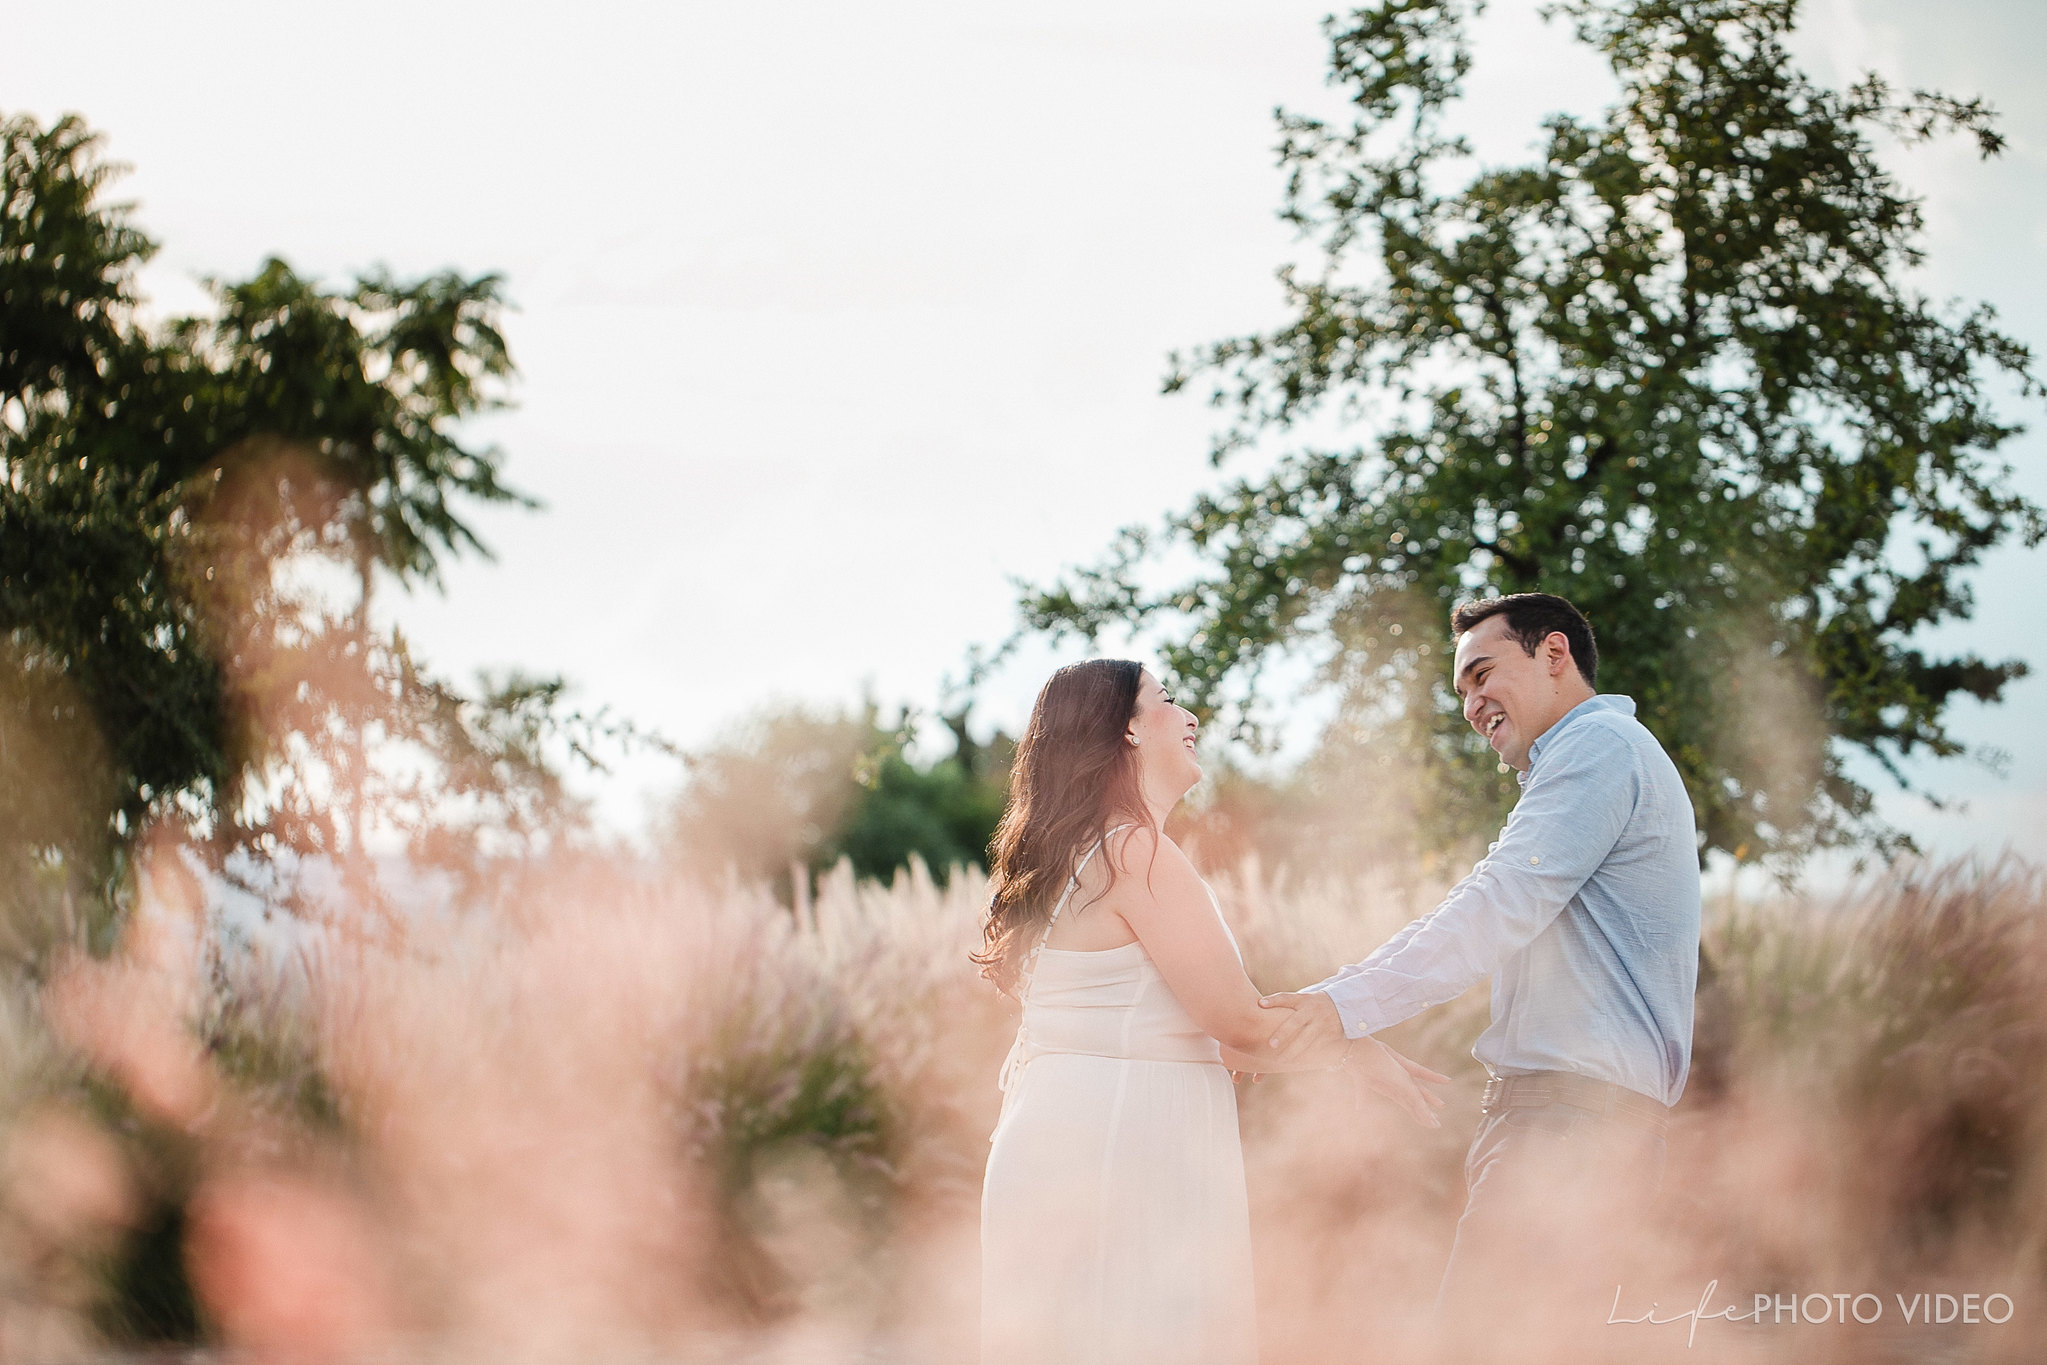 Engagement_Session_LifePhotoVideo_SesionCasual